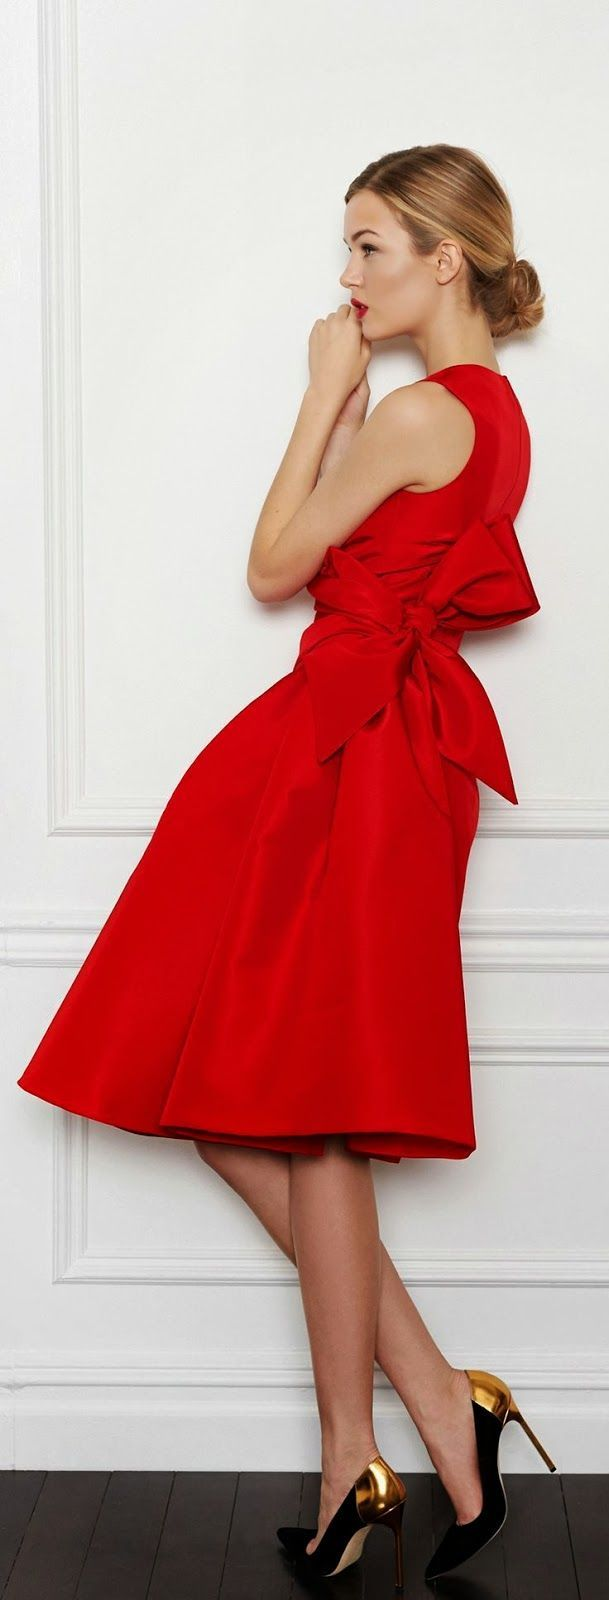 Lo lo lord and taylor party dresses - 32 Gorgeous Little Red Dress Styles